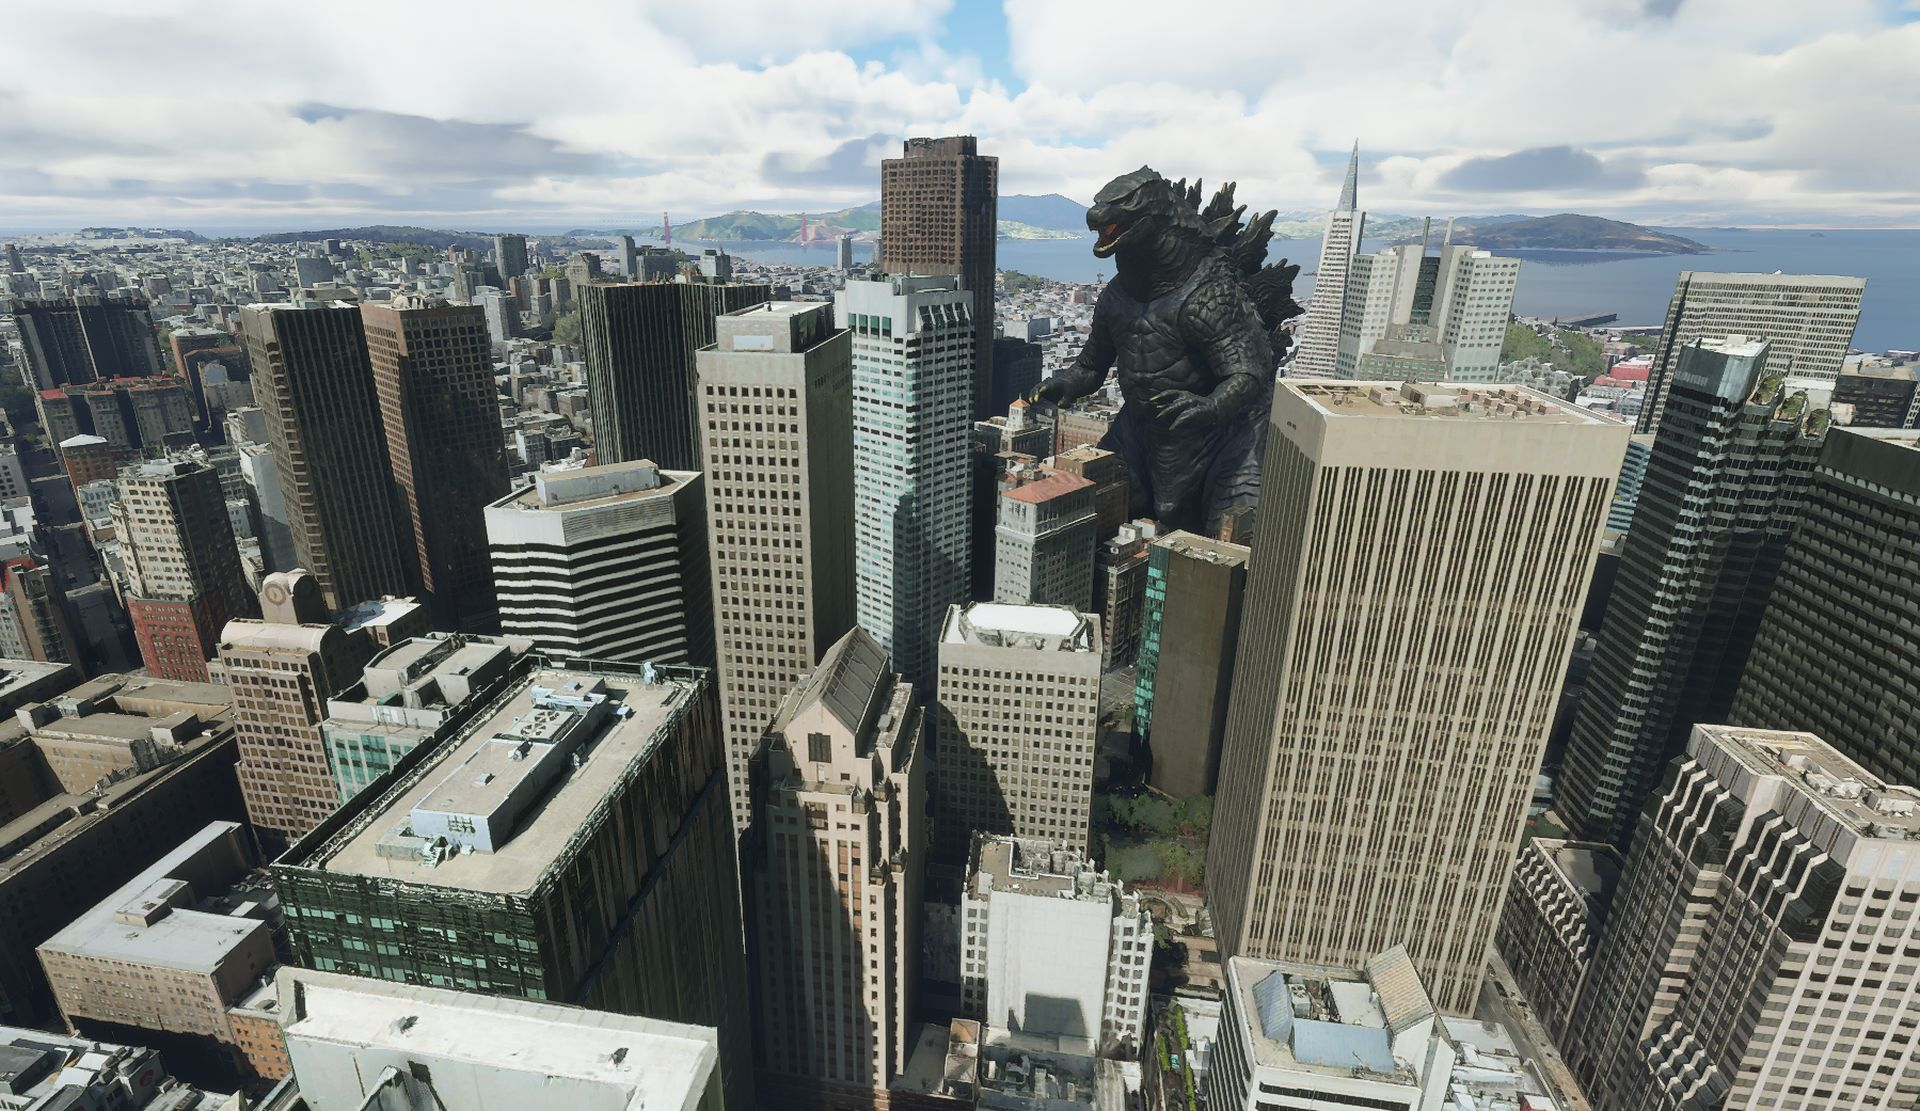 A Microsoft Flight Simulator screenshot. It shows the San Francisco skyline, with a large, sky-scraper sized Godzilla statue in the middle of them.